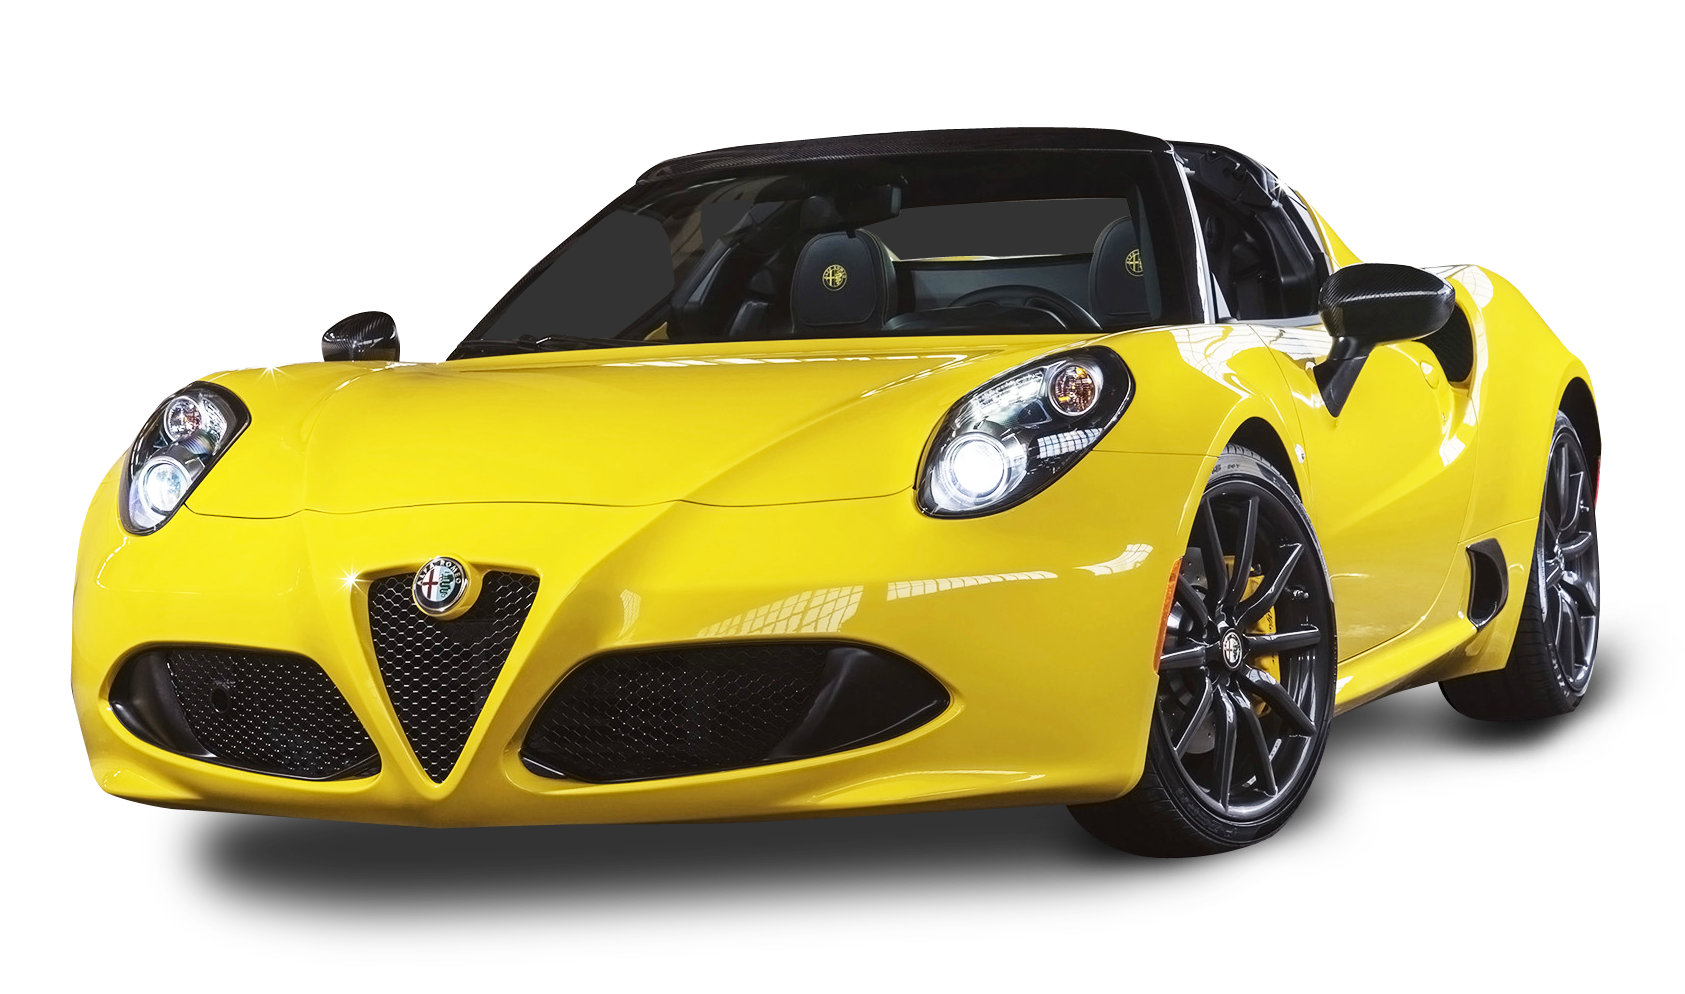 Download Alfa Romeo 4c Spider Yellow Car Png Image For Free